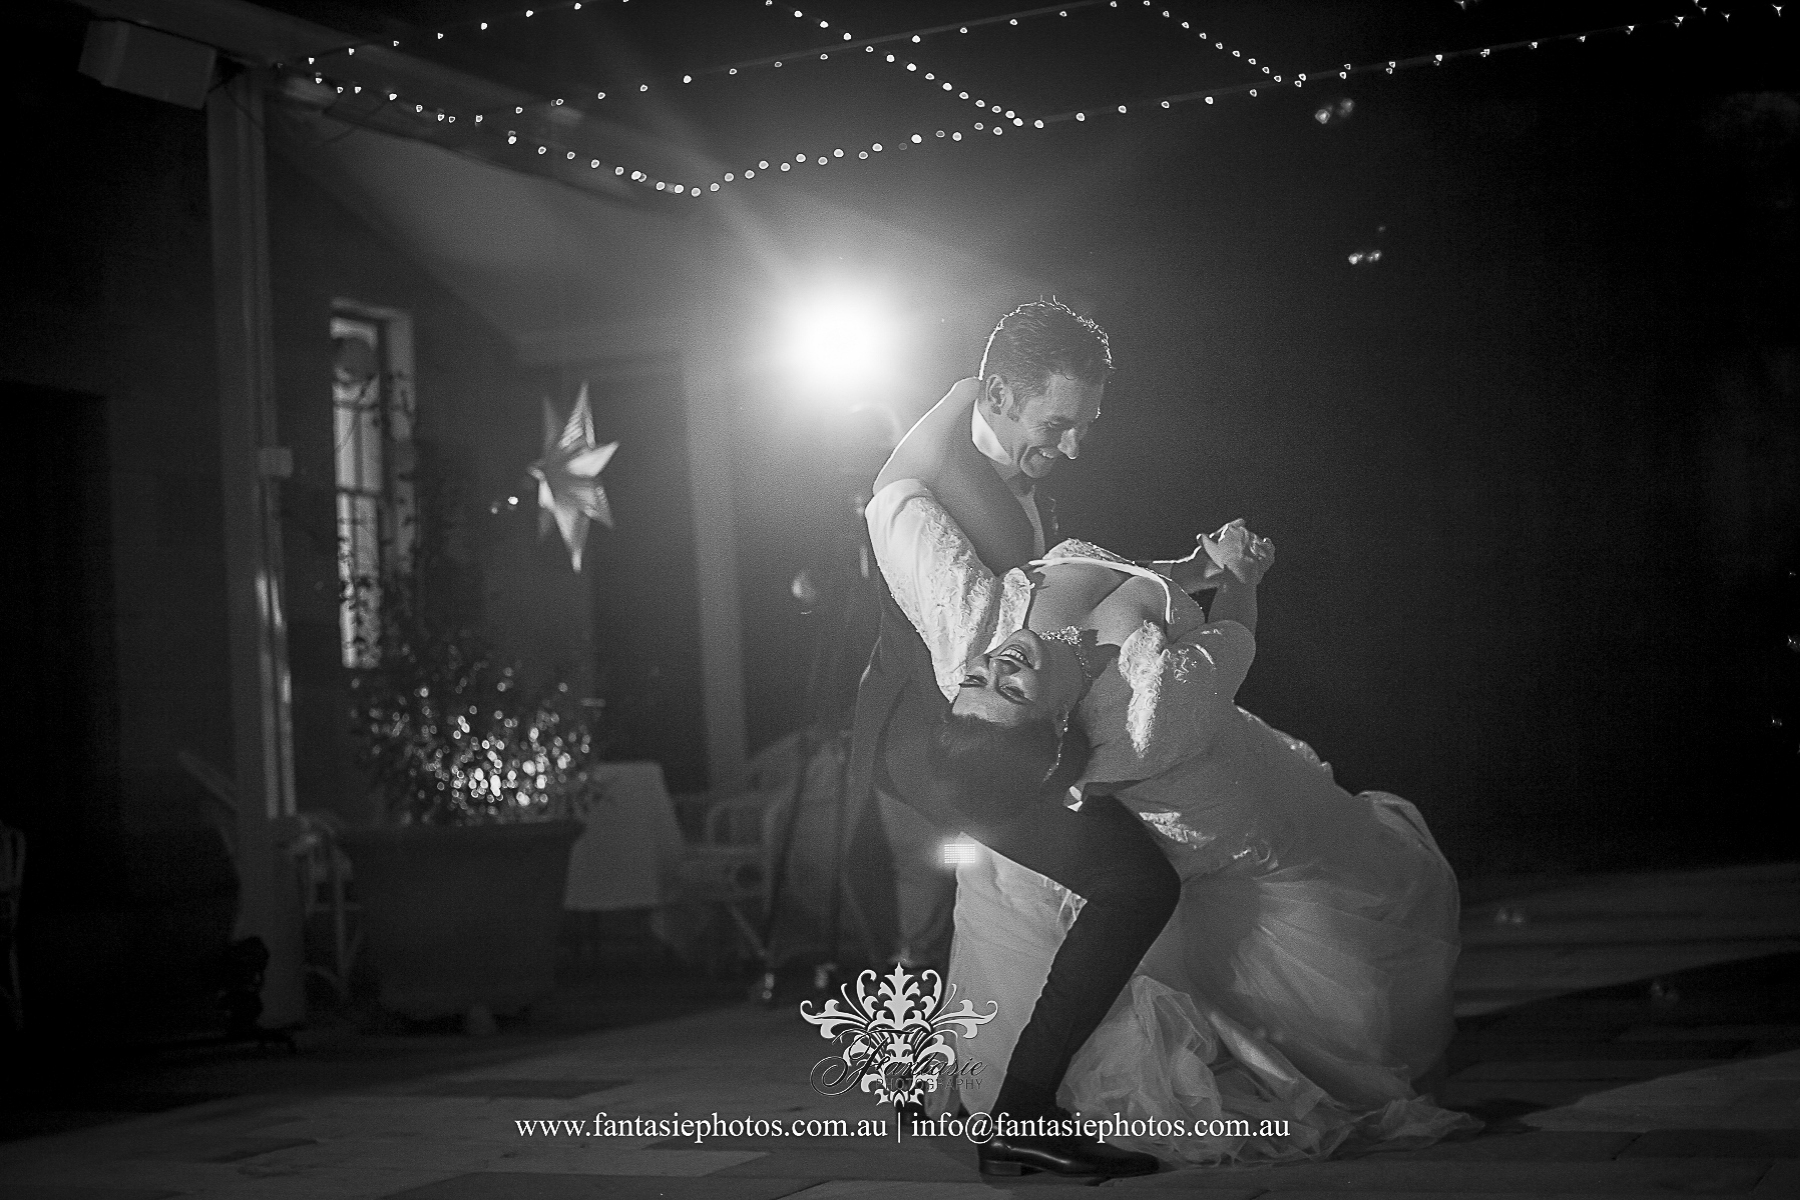 Stunning Capture First dance Bride and Groom at Gunner Barracks Mosman | Fantasie Photography